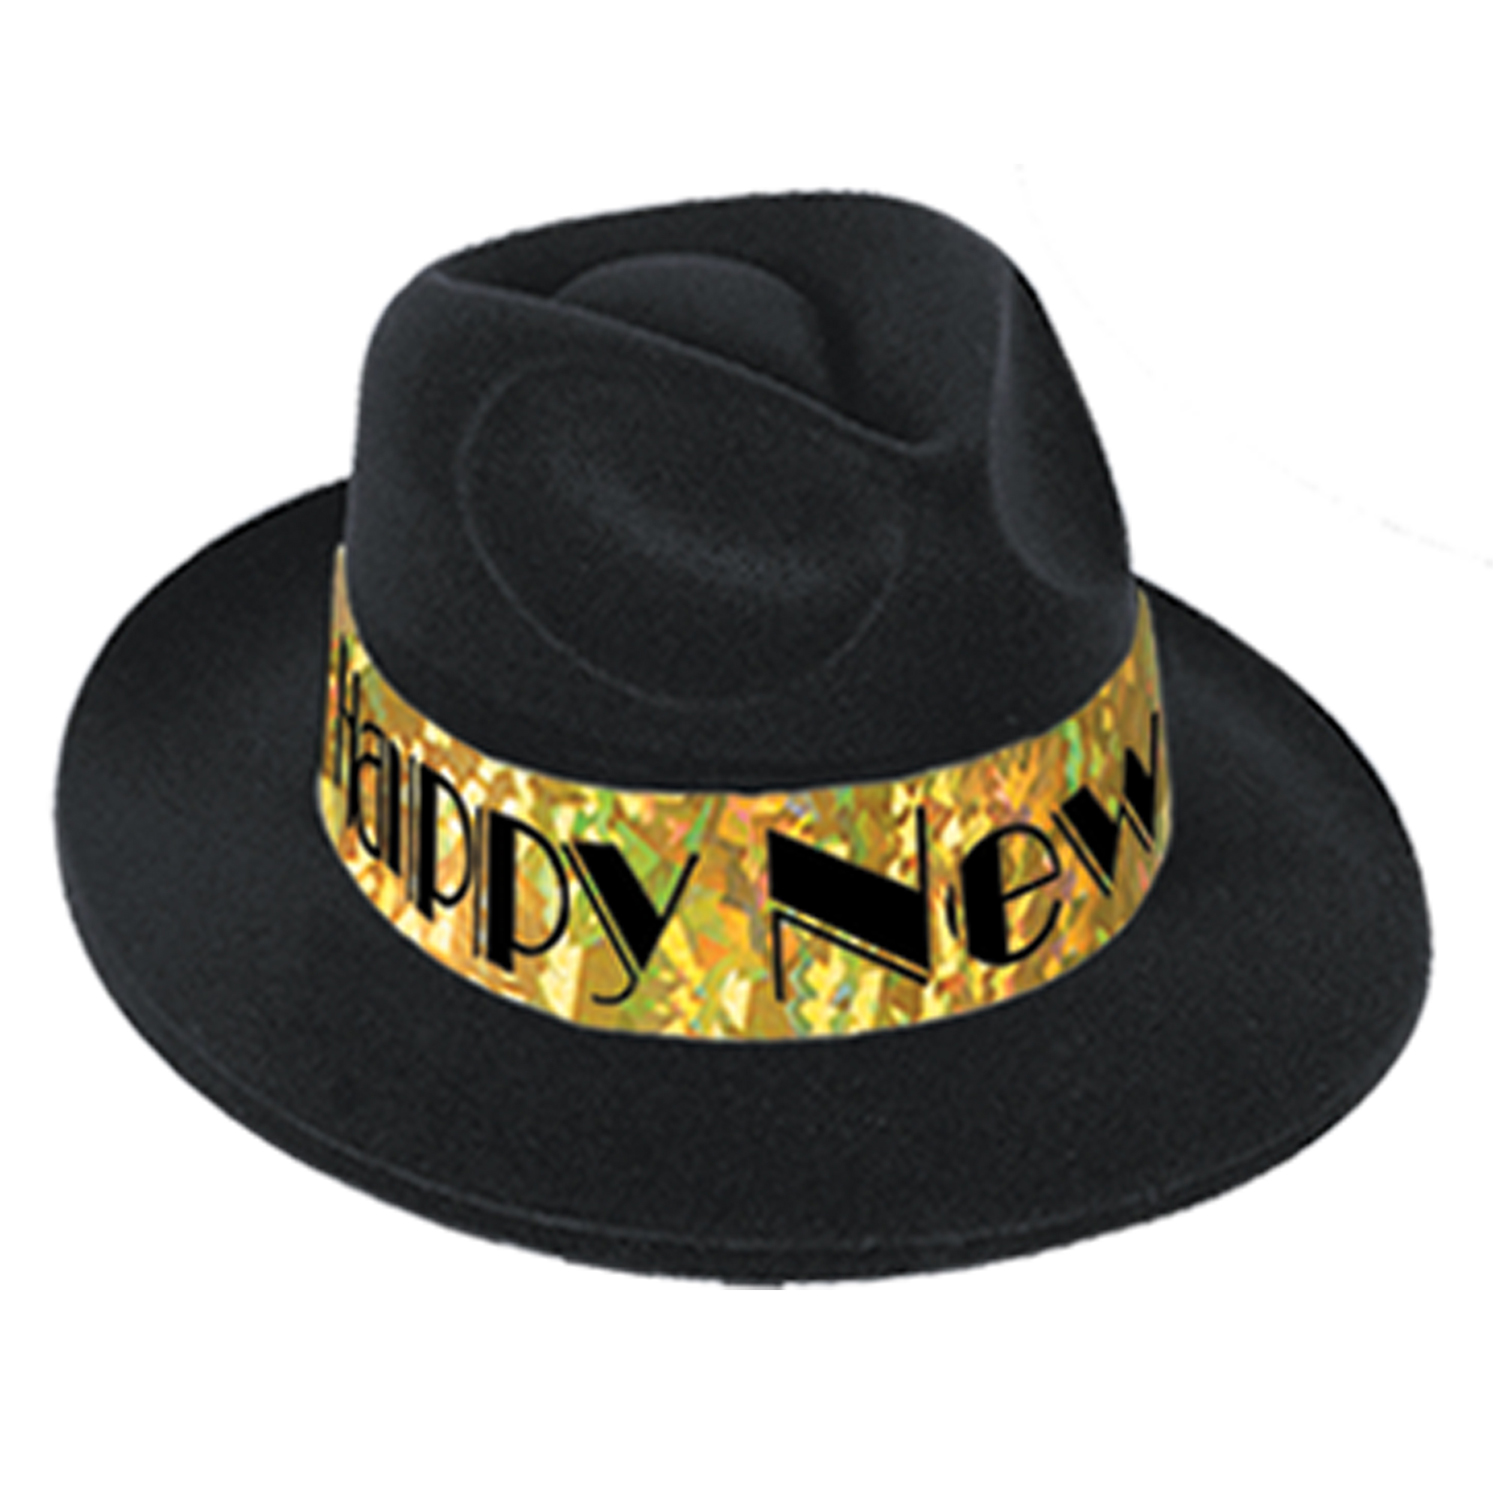 Swingin' Gold Fedora black & gold